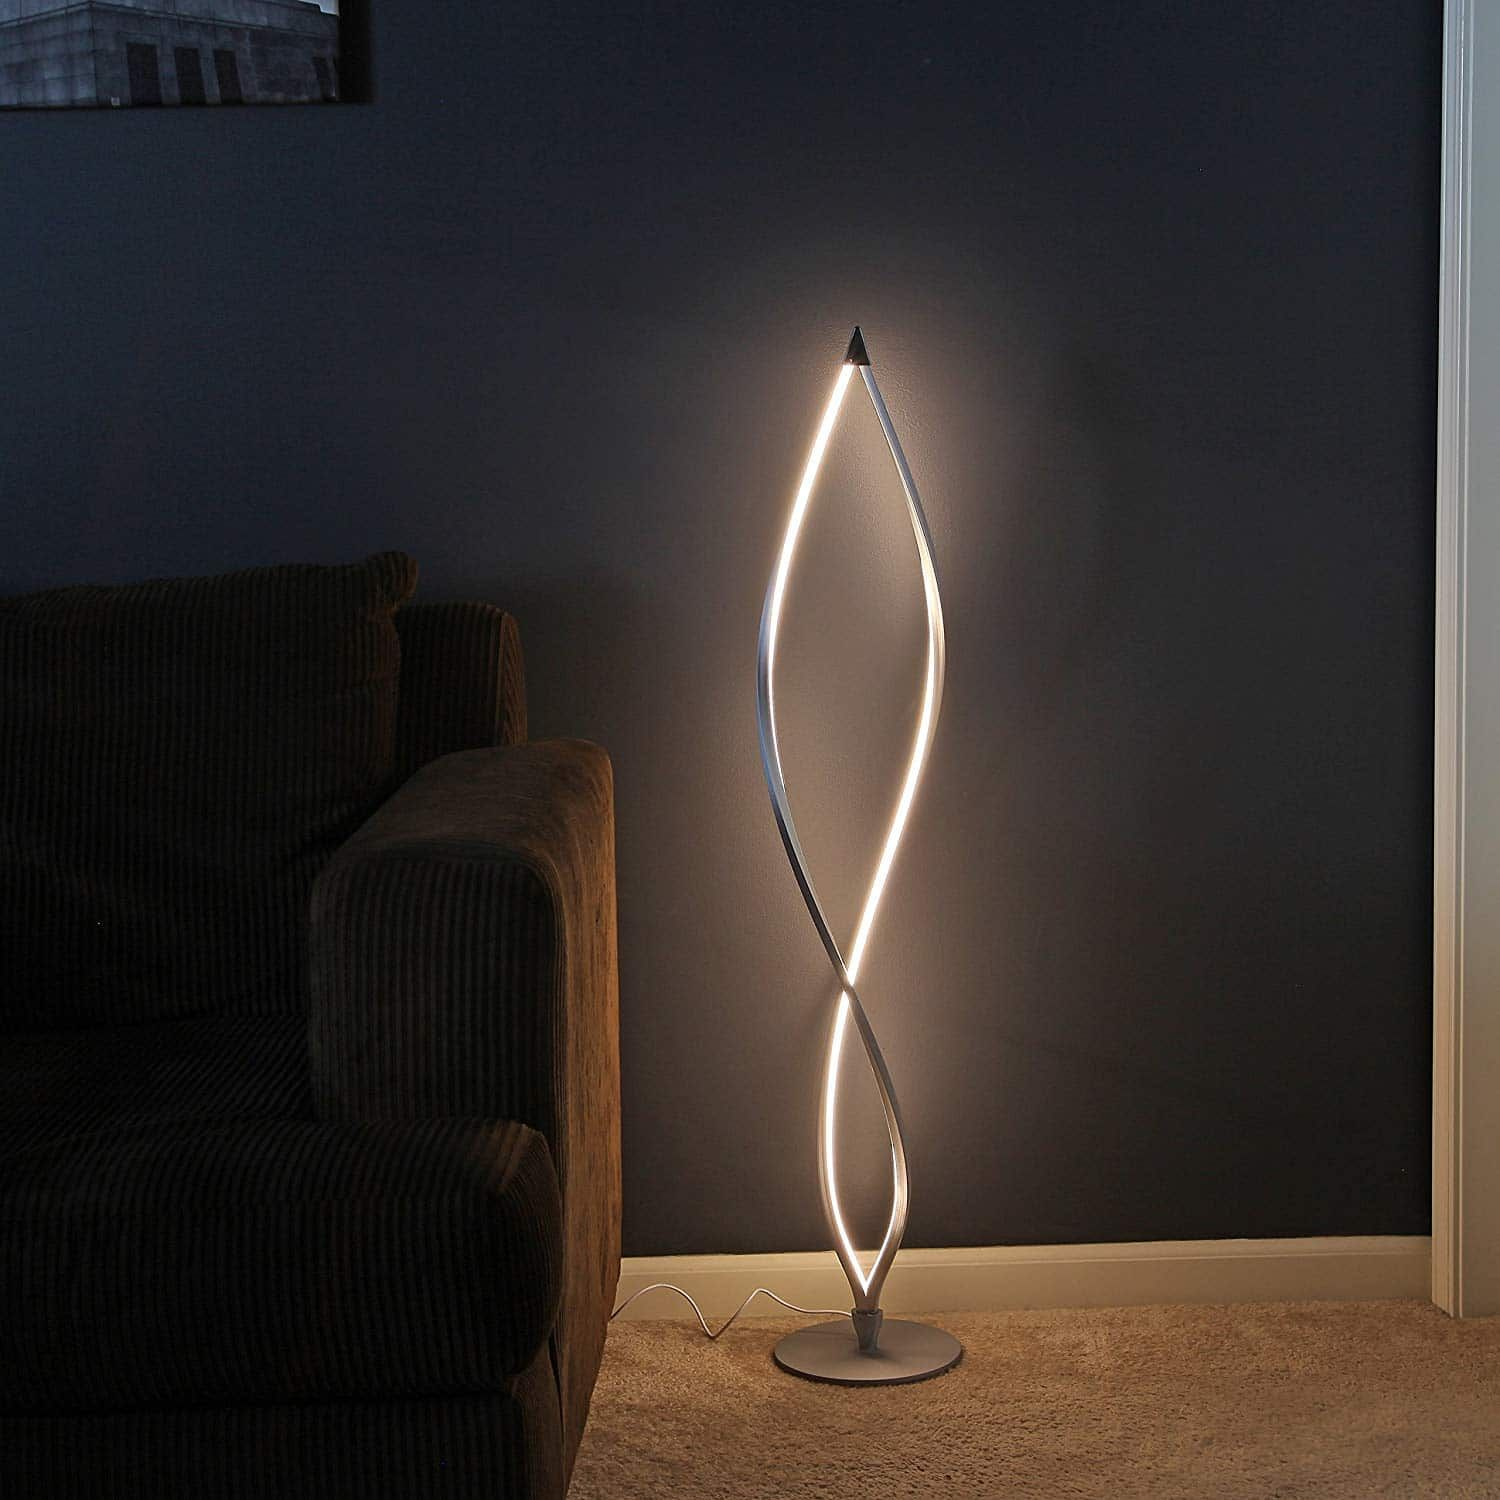 Modern Led Floor Lamp Top Daily Gadgets Stylish For Interior With Home Unique Floor Lamps Led Floor Lamp Modern Floor Lamps